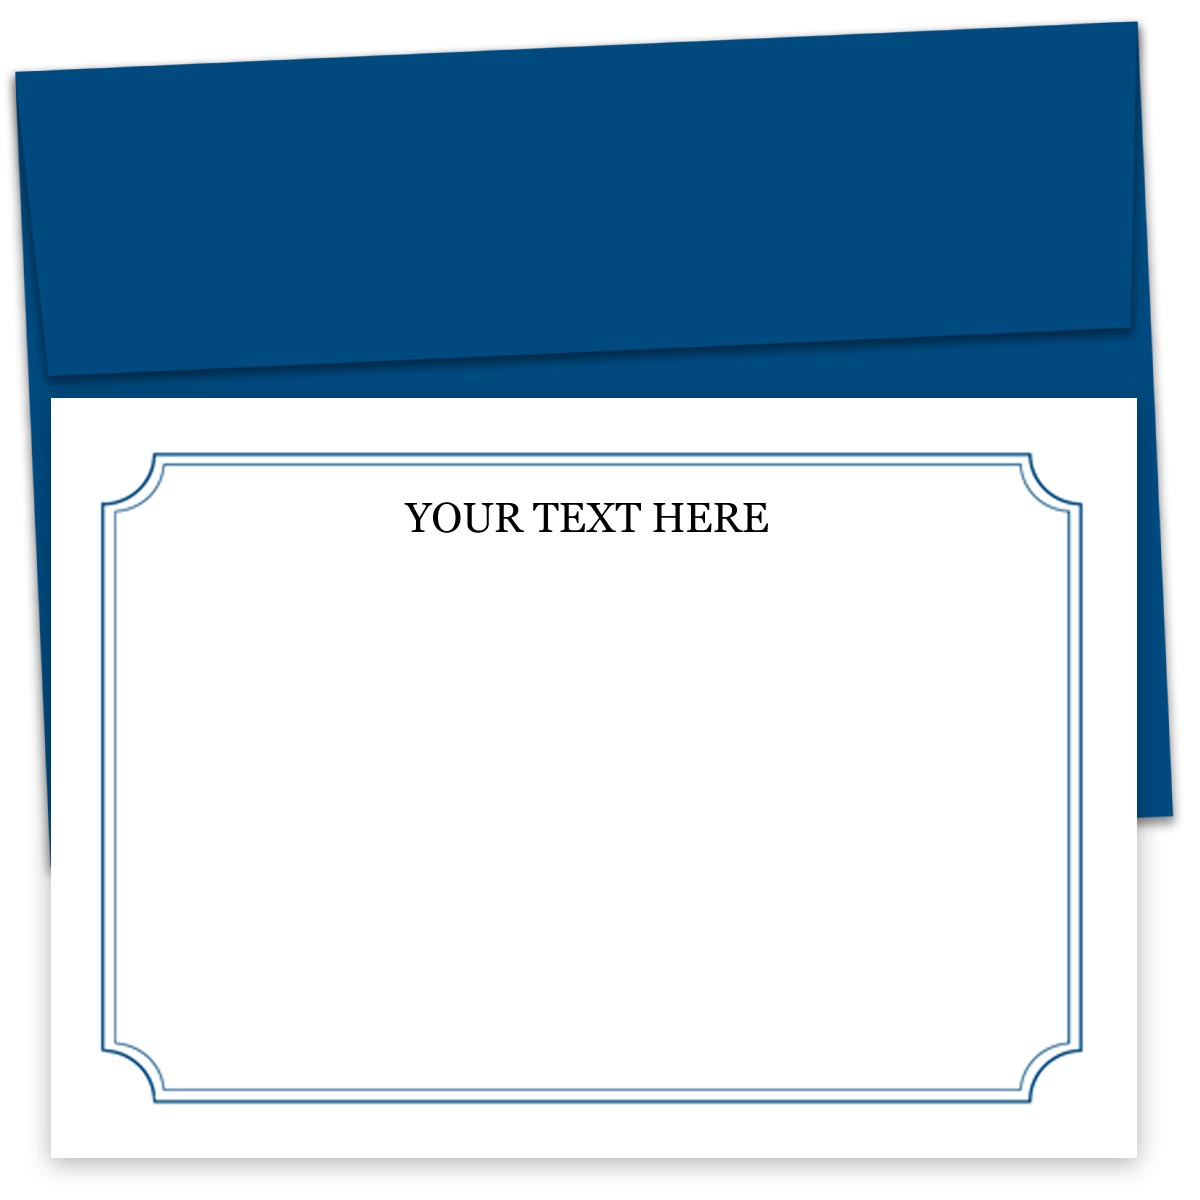 personalized stationery - Personalized Stationery Cards